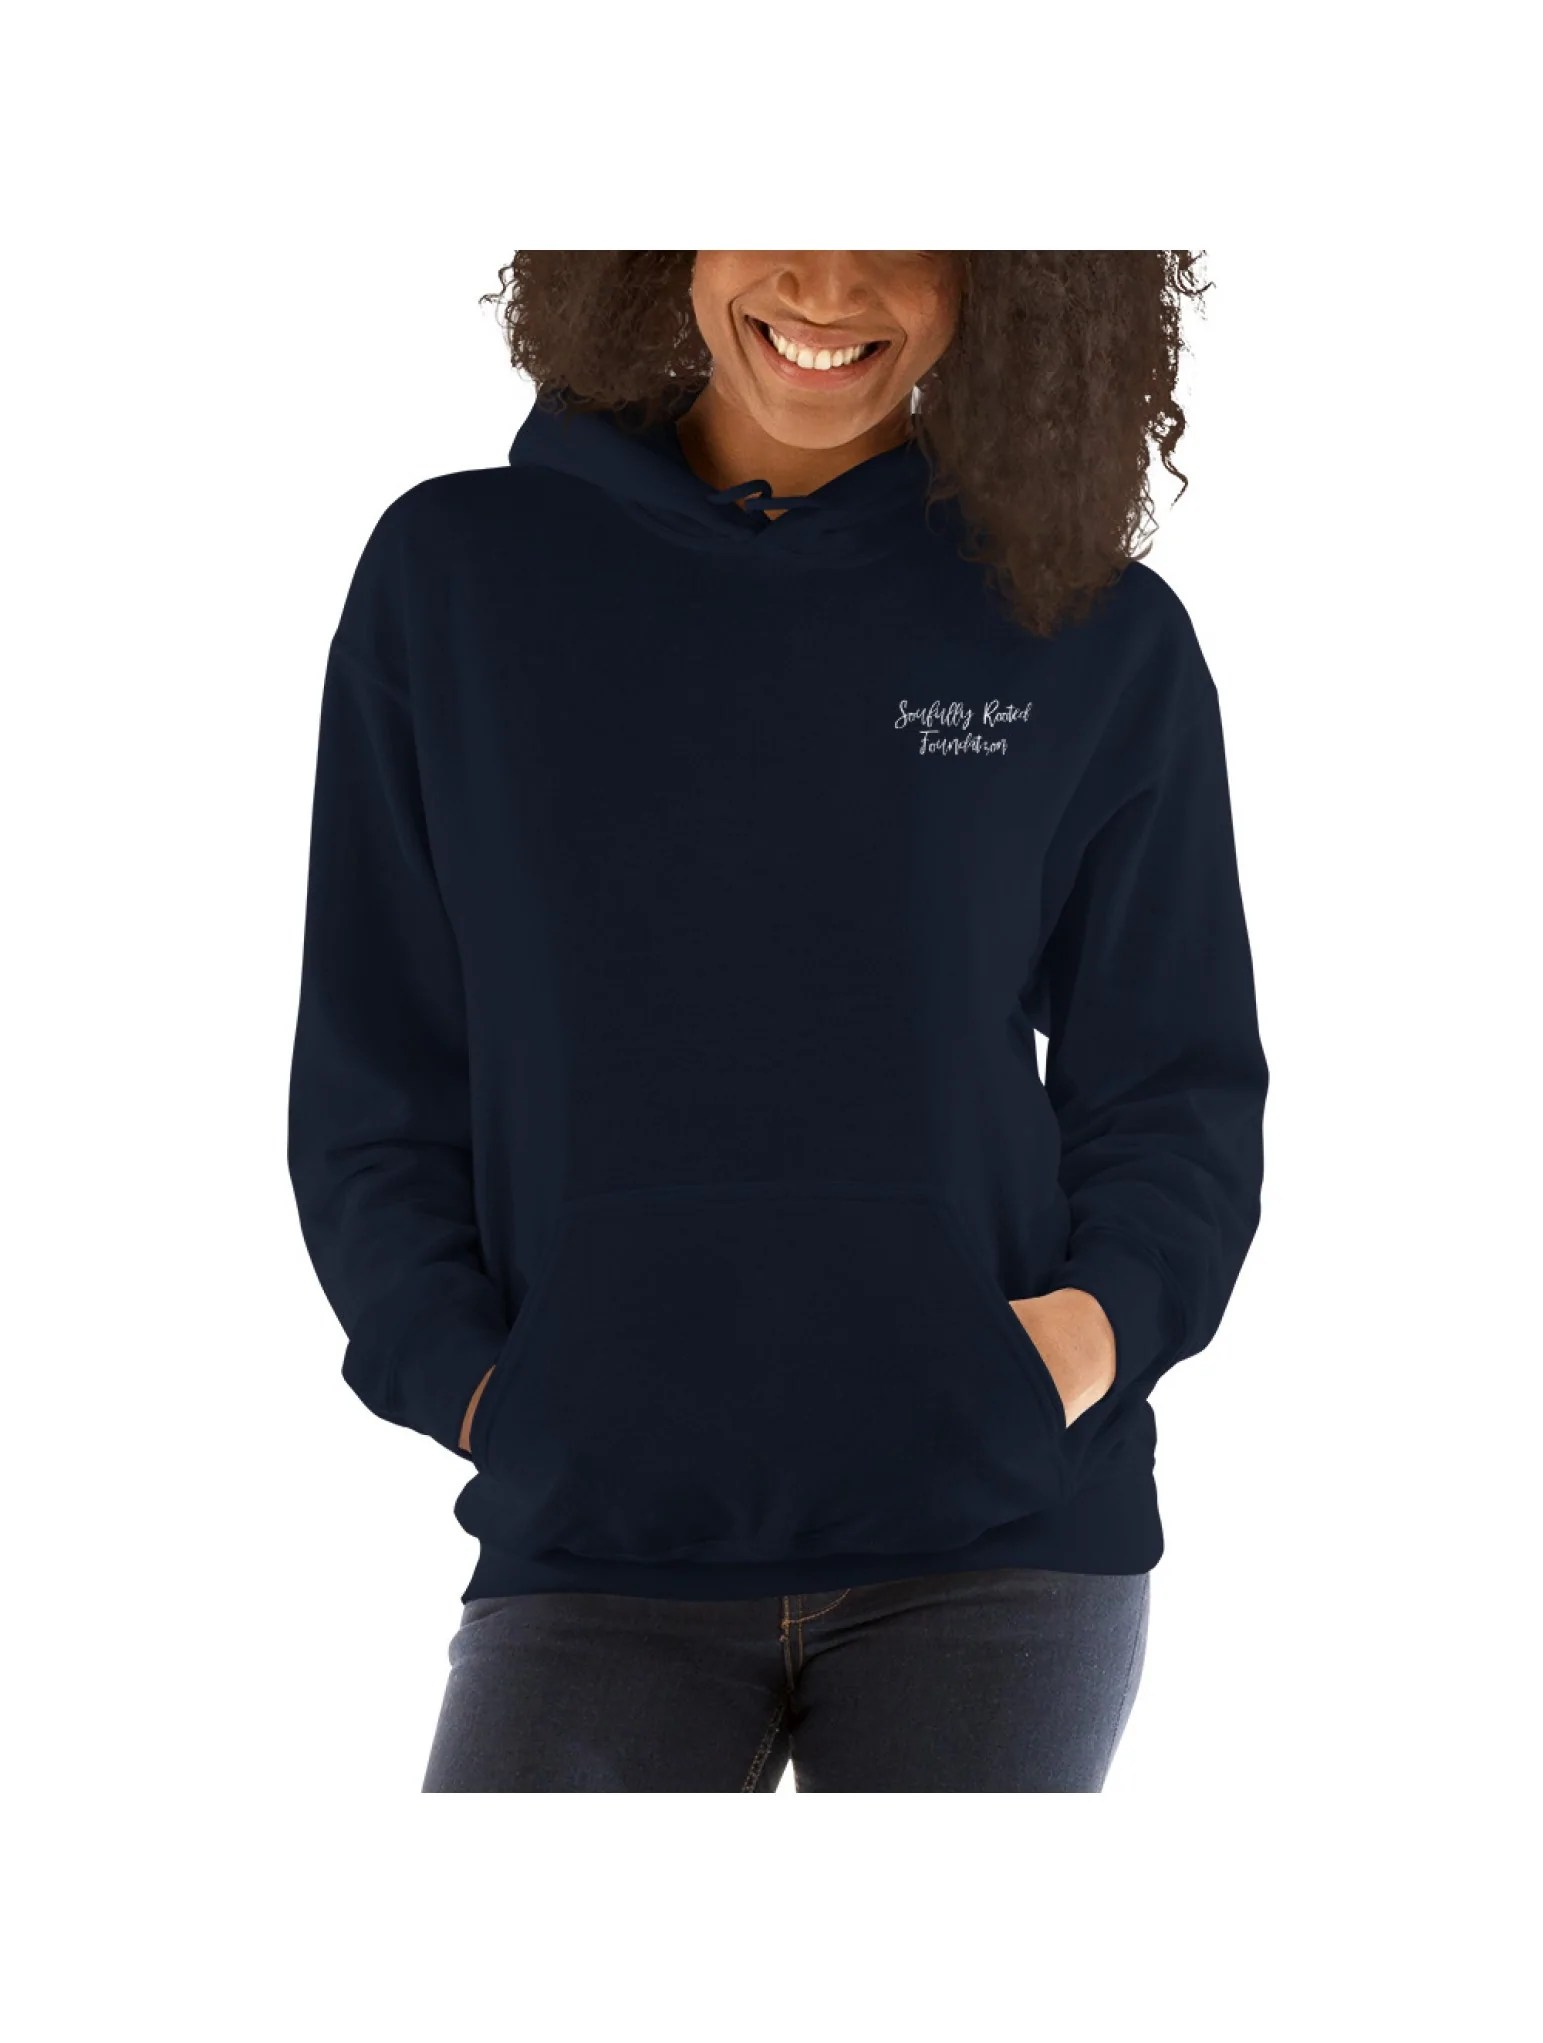 Soulfully Rooted Signature Sweat